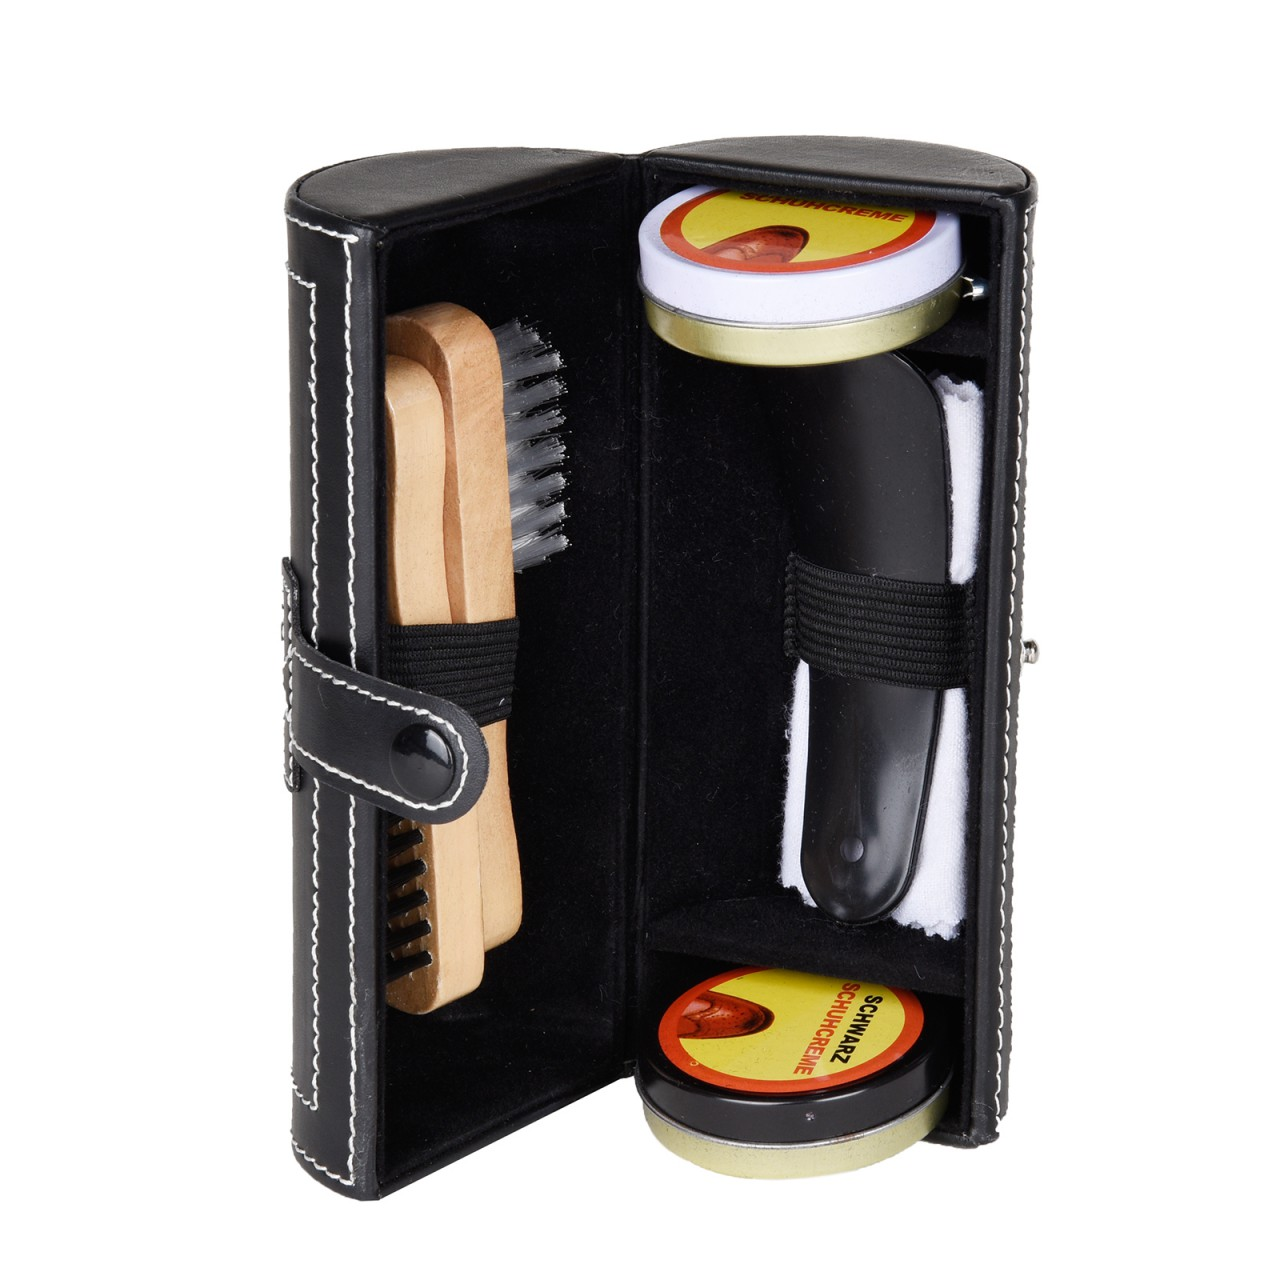 Shoe polishing set with 7 pieces